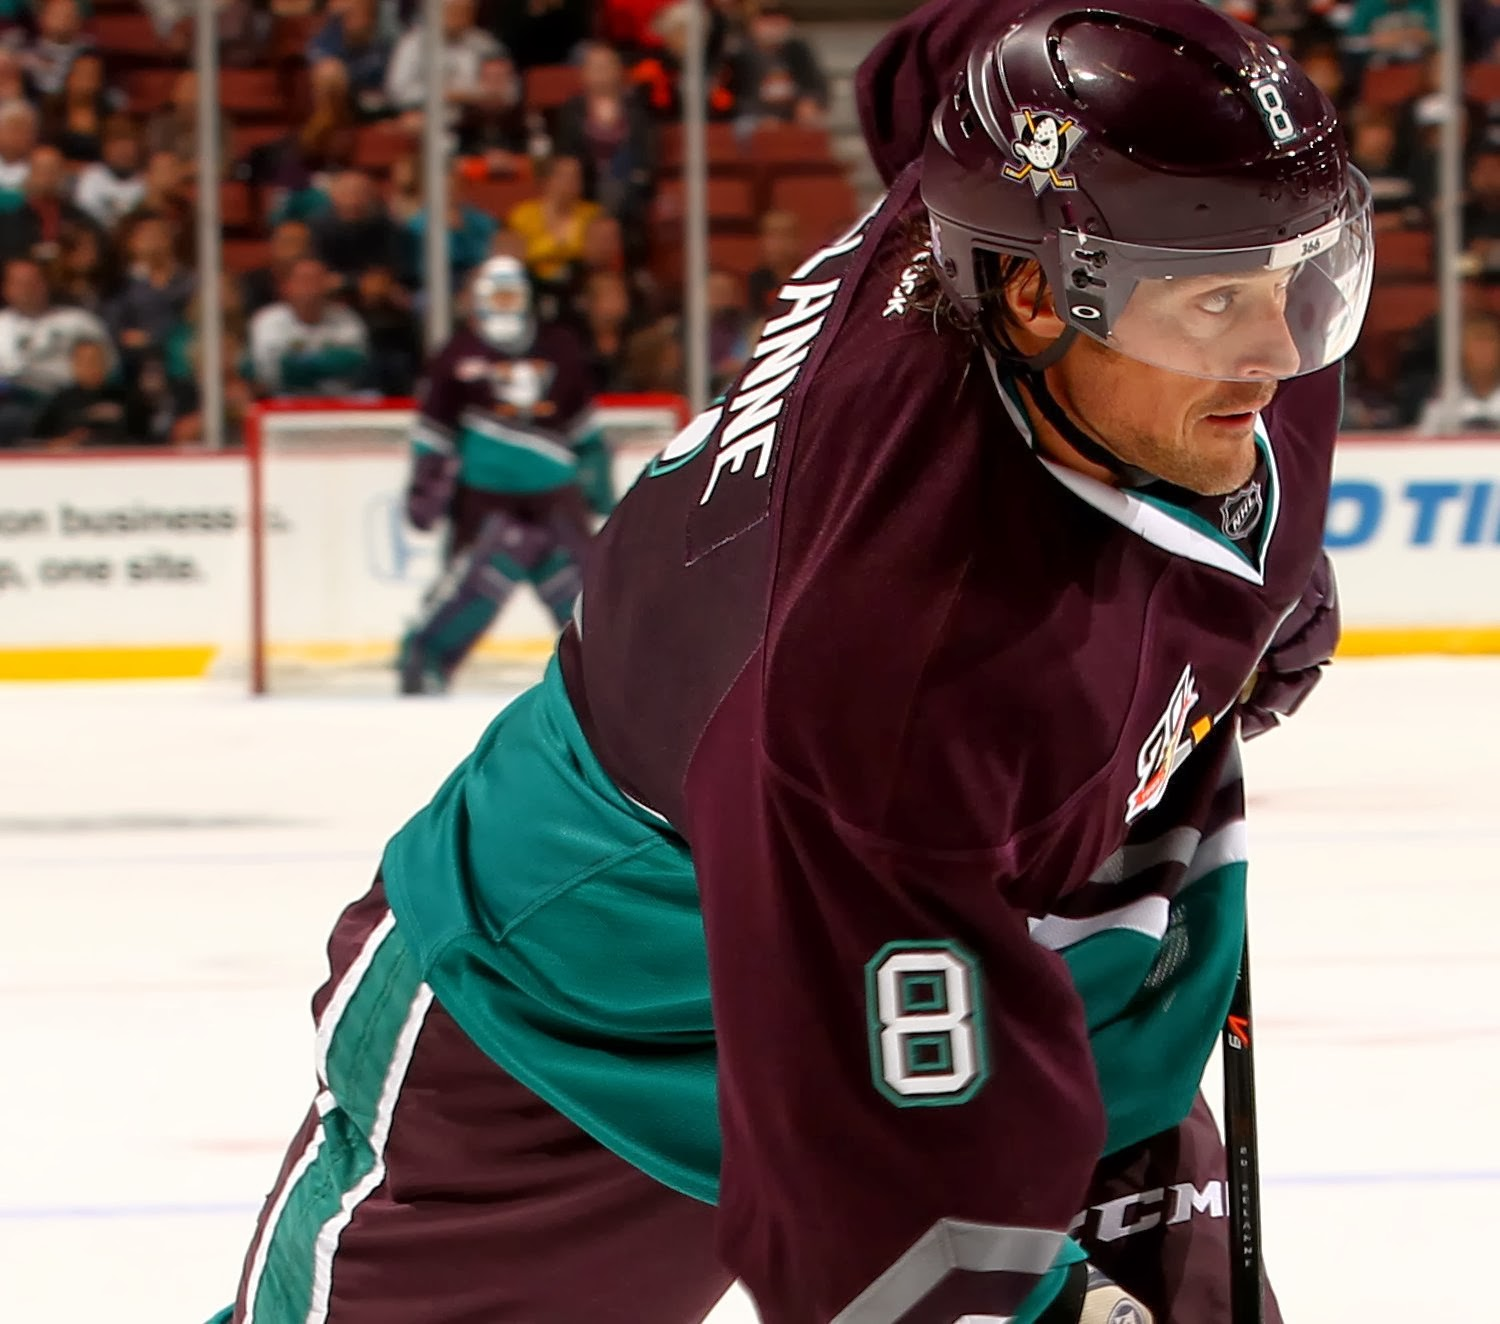 6df4608c3 It s a fairly easy decision to go with Selanne for the jersey. He and  Kariya were the faces of the franchise when they broke out in the 90 s and  especially ...